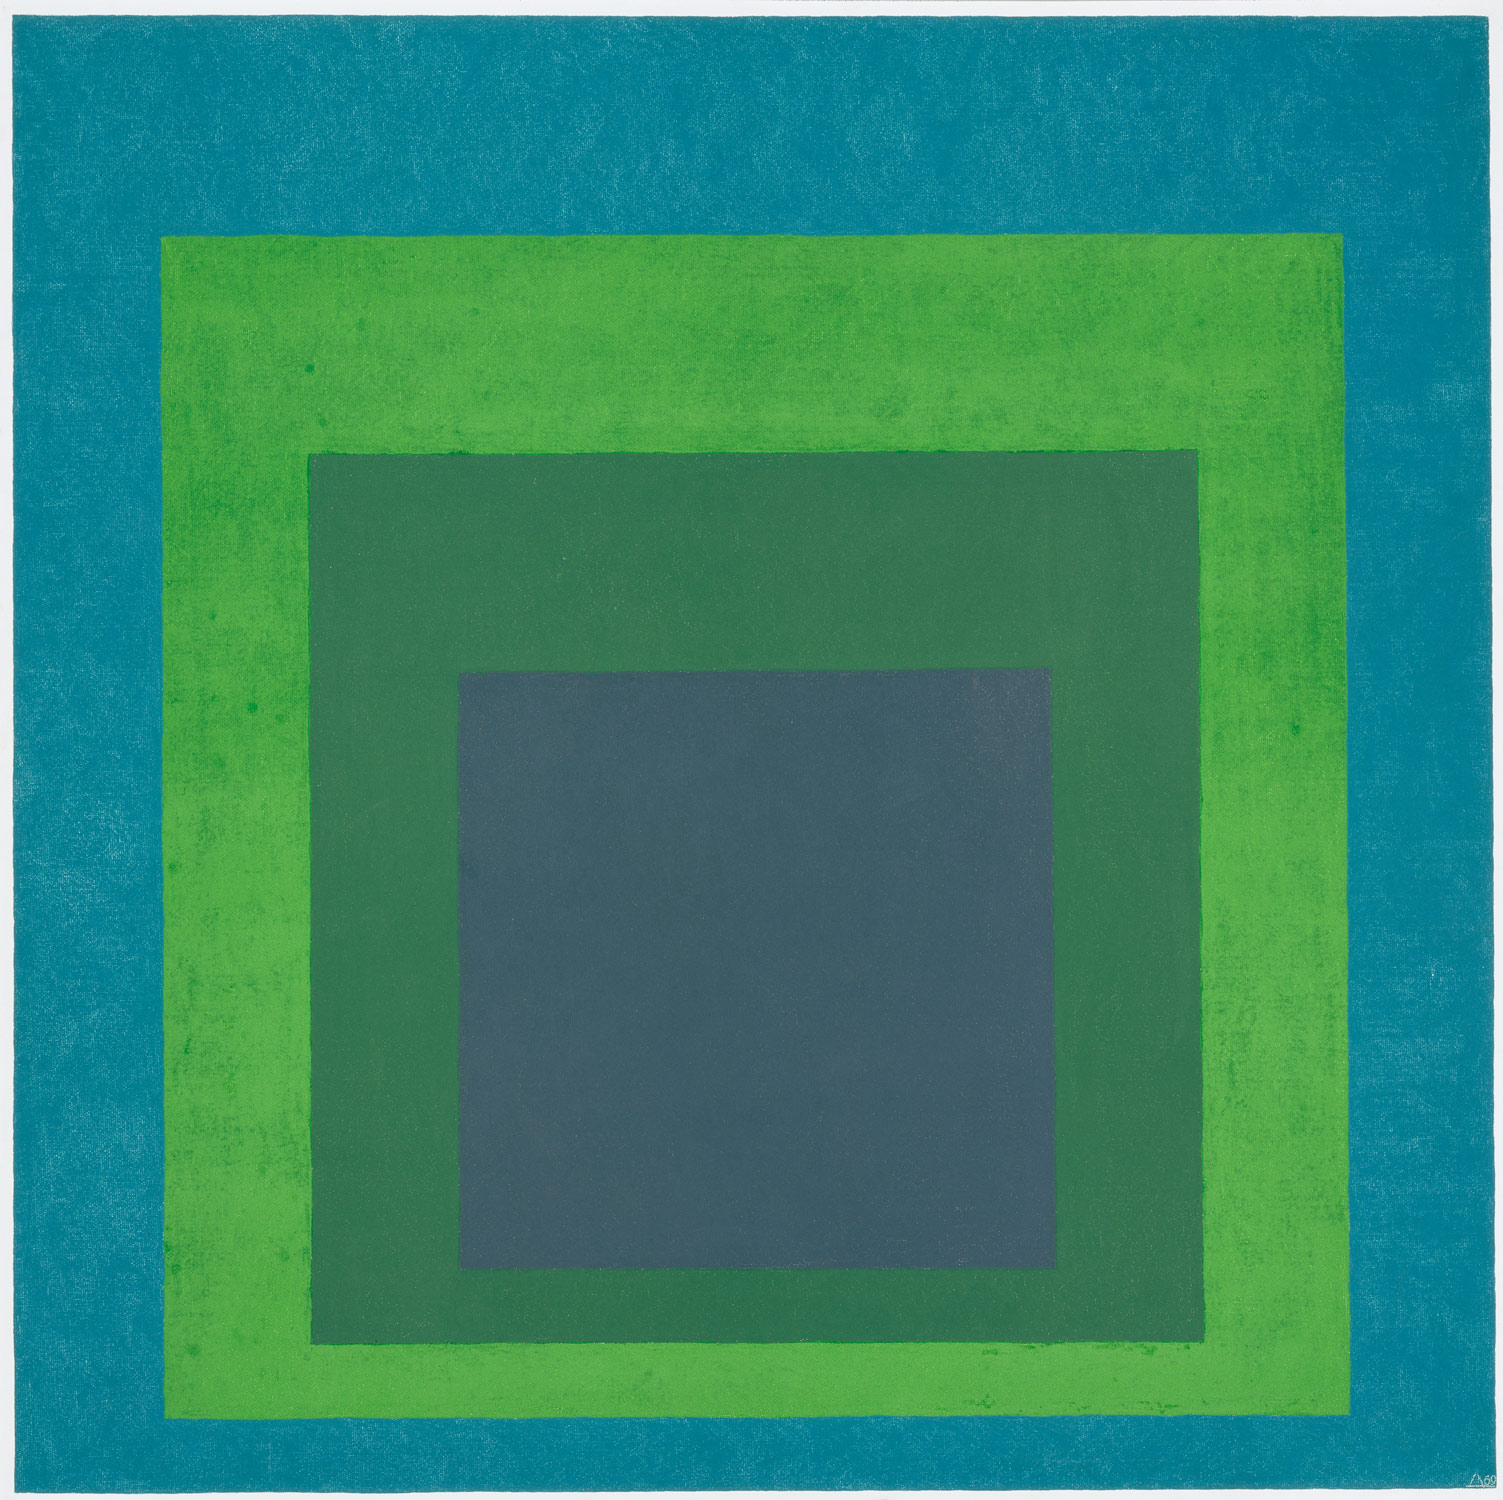 Figure 24: Josef Albers,  Homage to the Square: Soft Spoken,  1969  Oil on Masonite, 121.9 x 121.9 cm Collection of the Metropolitan Museum of Art